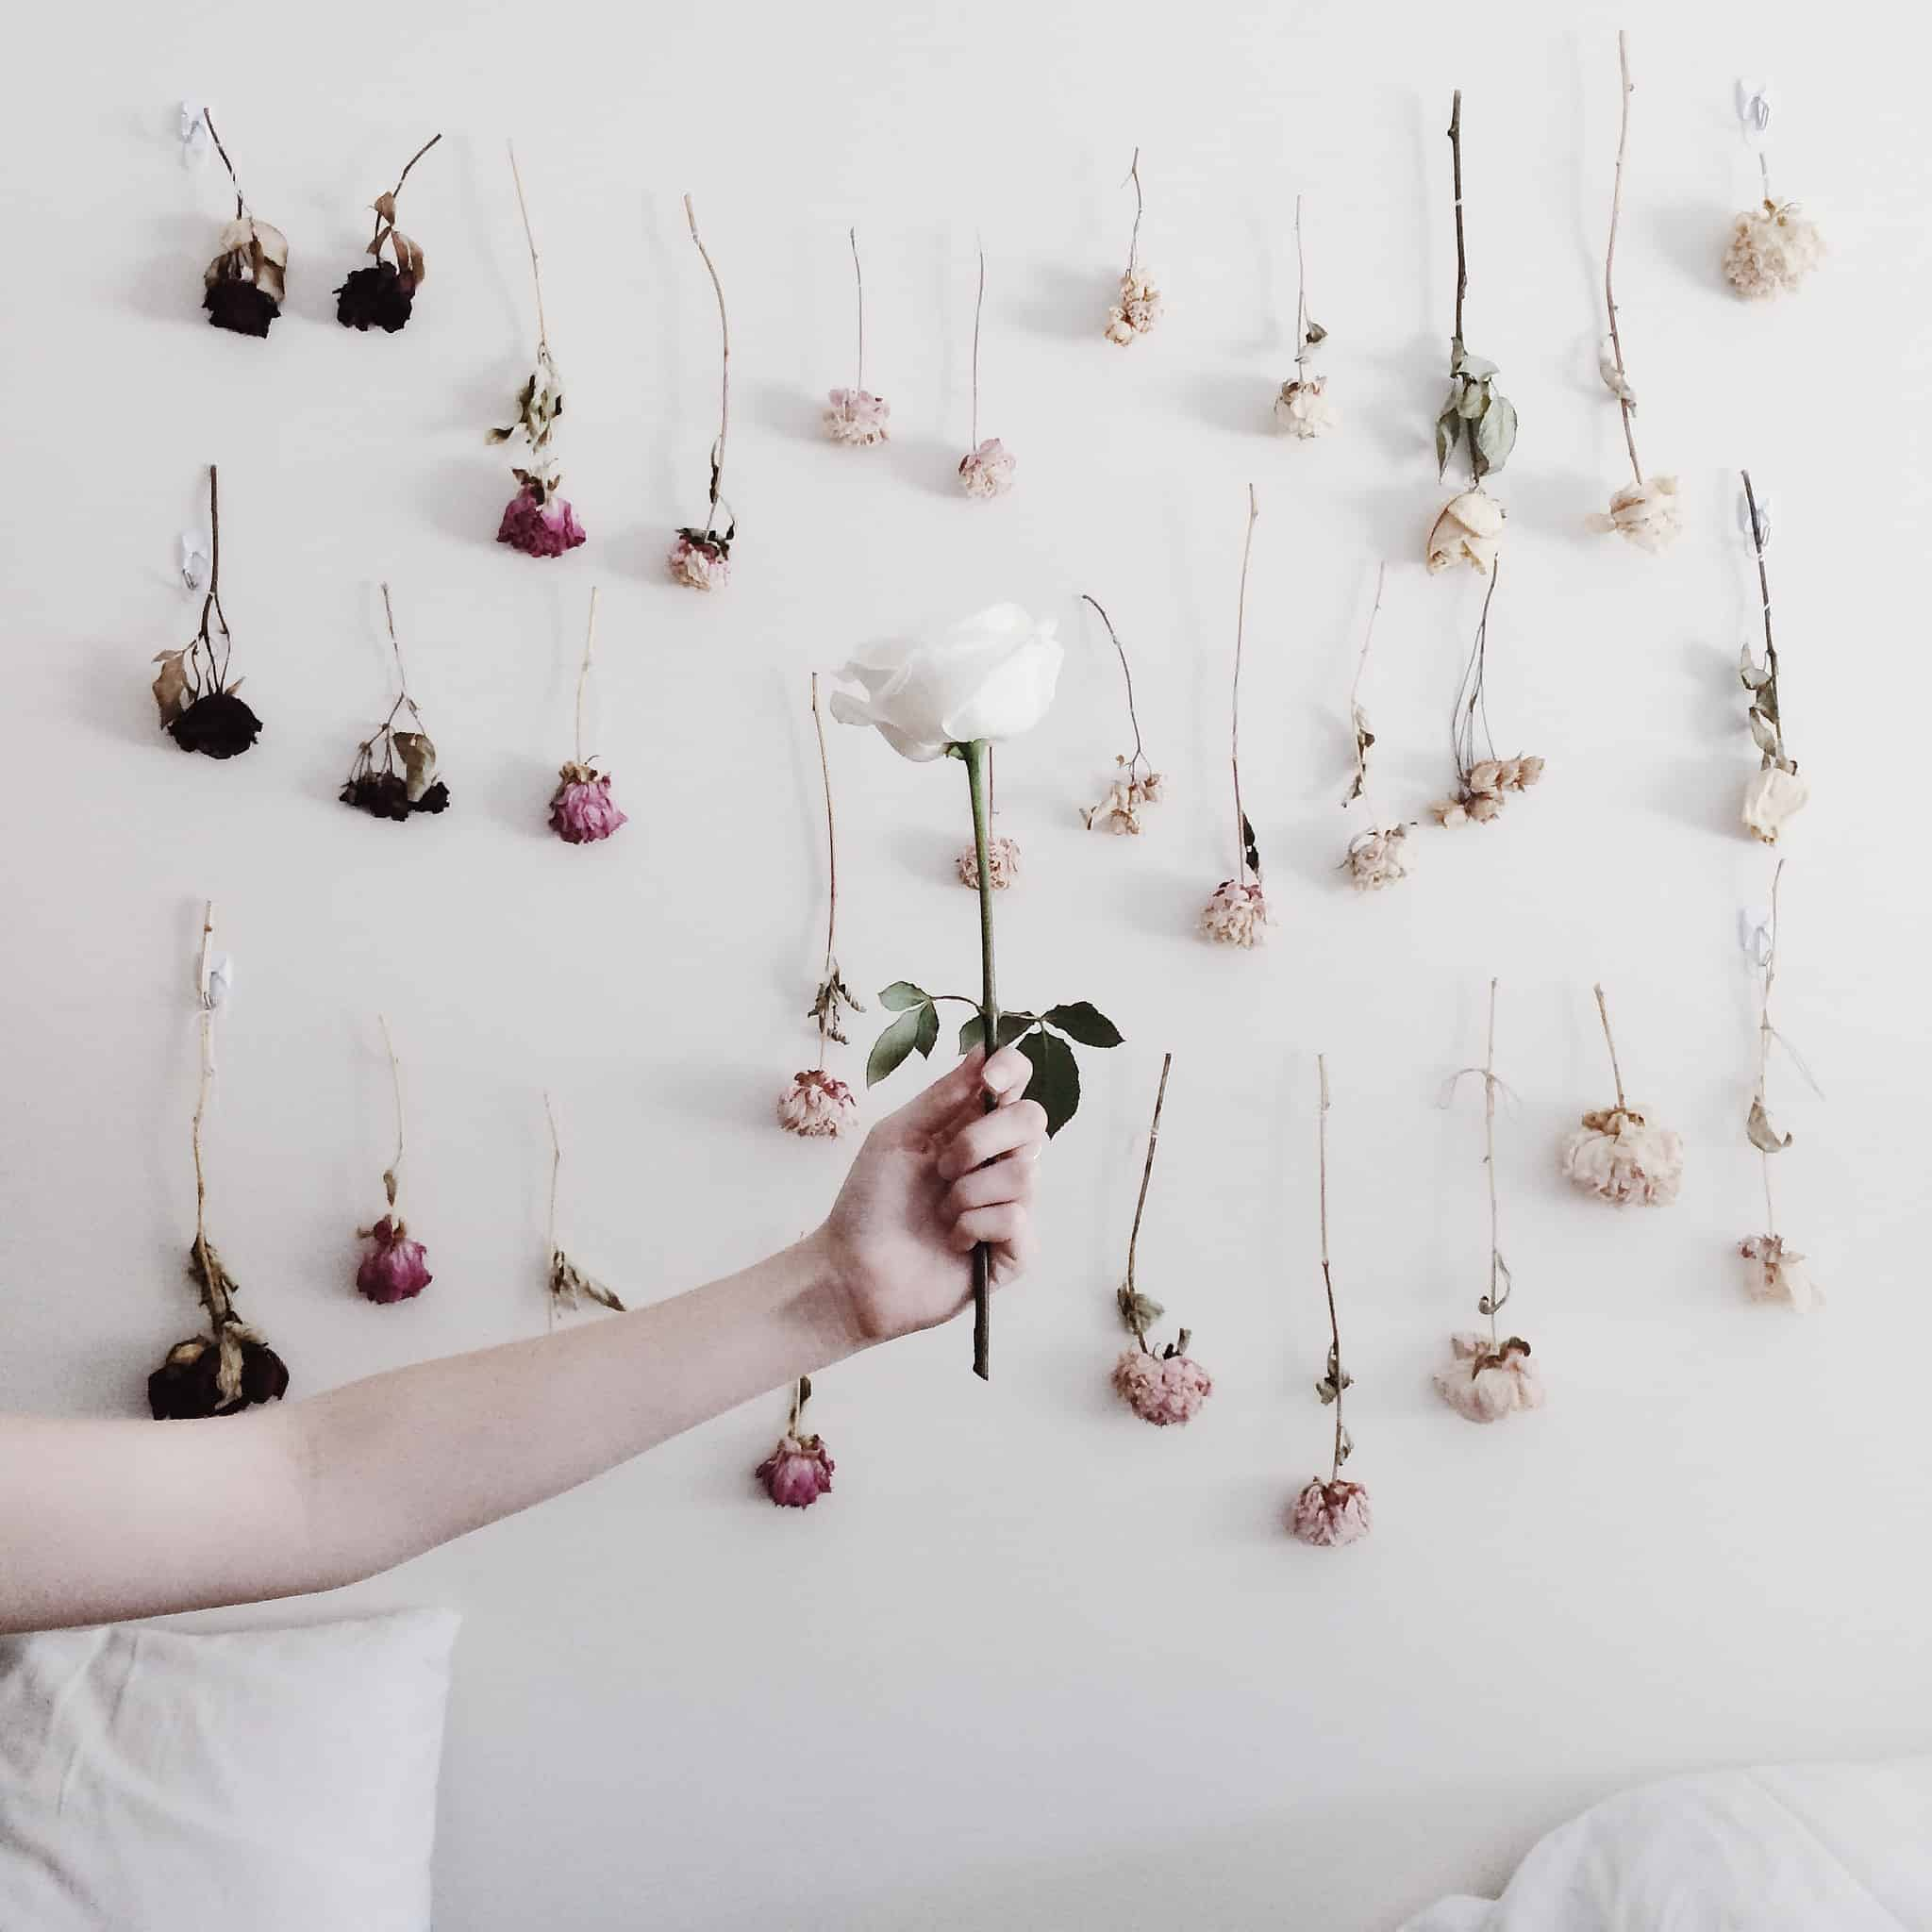 Diy Wall Flowers: 15 Crafts Made With Dried Flowers